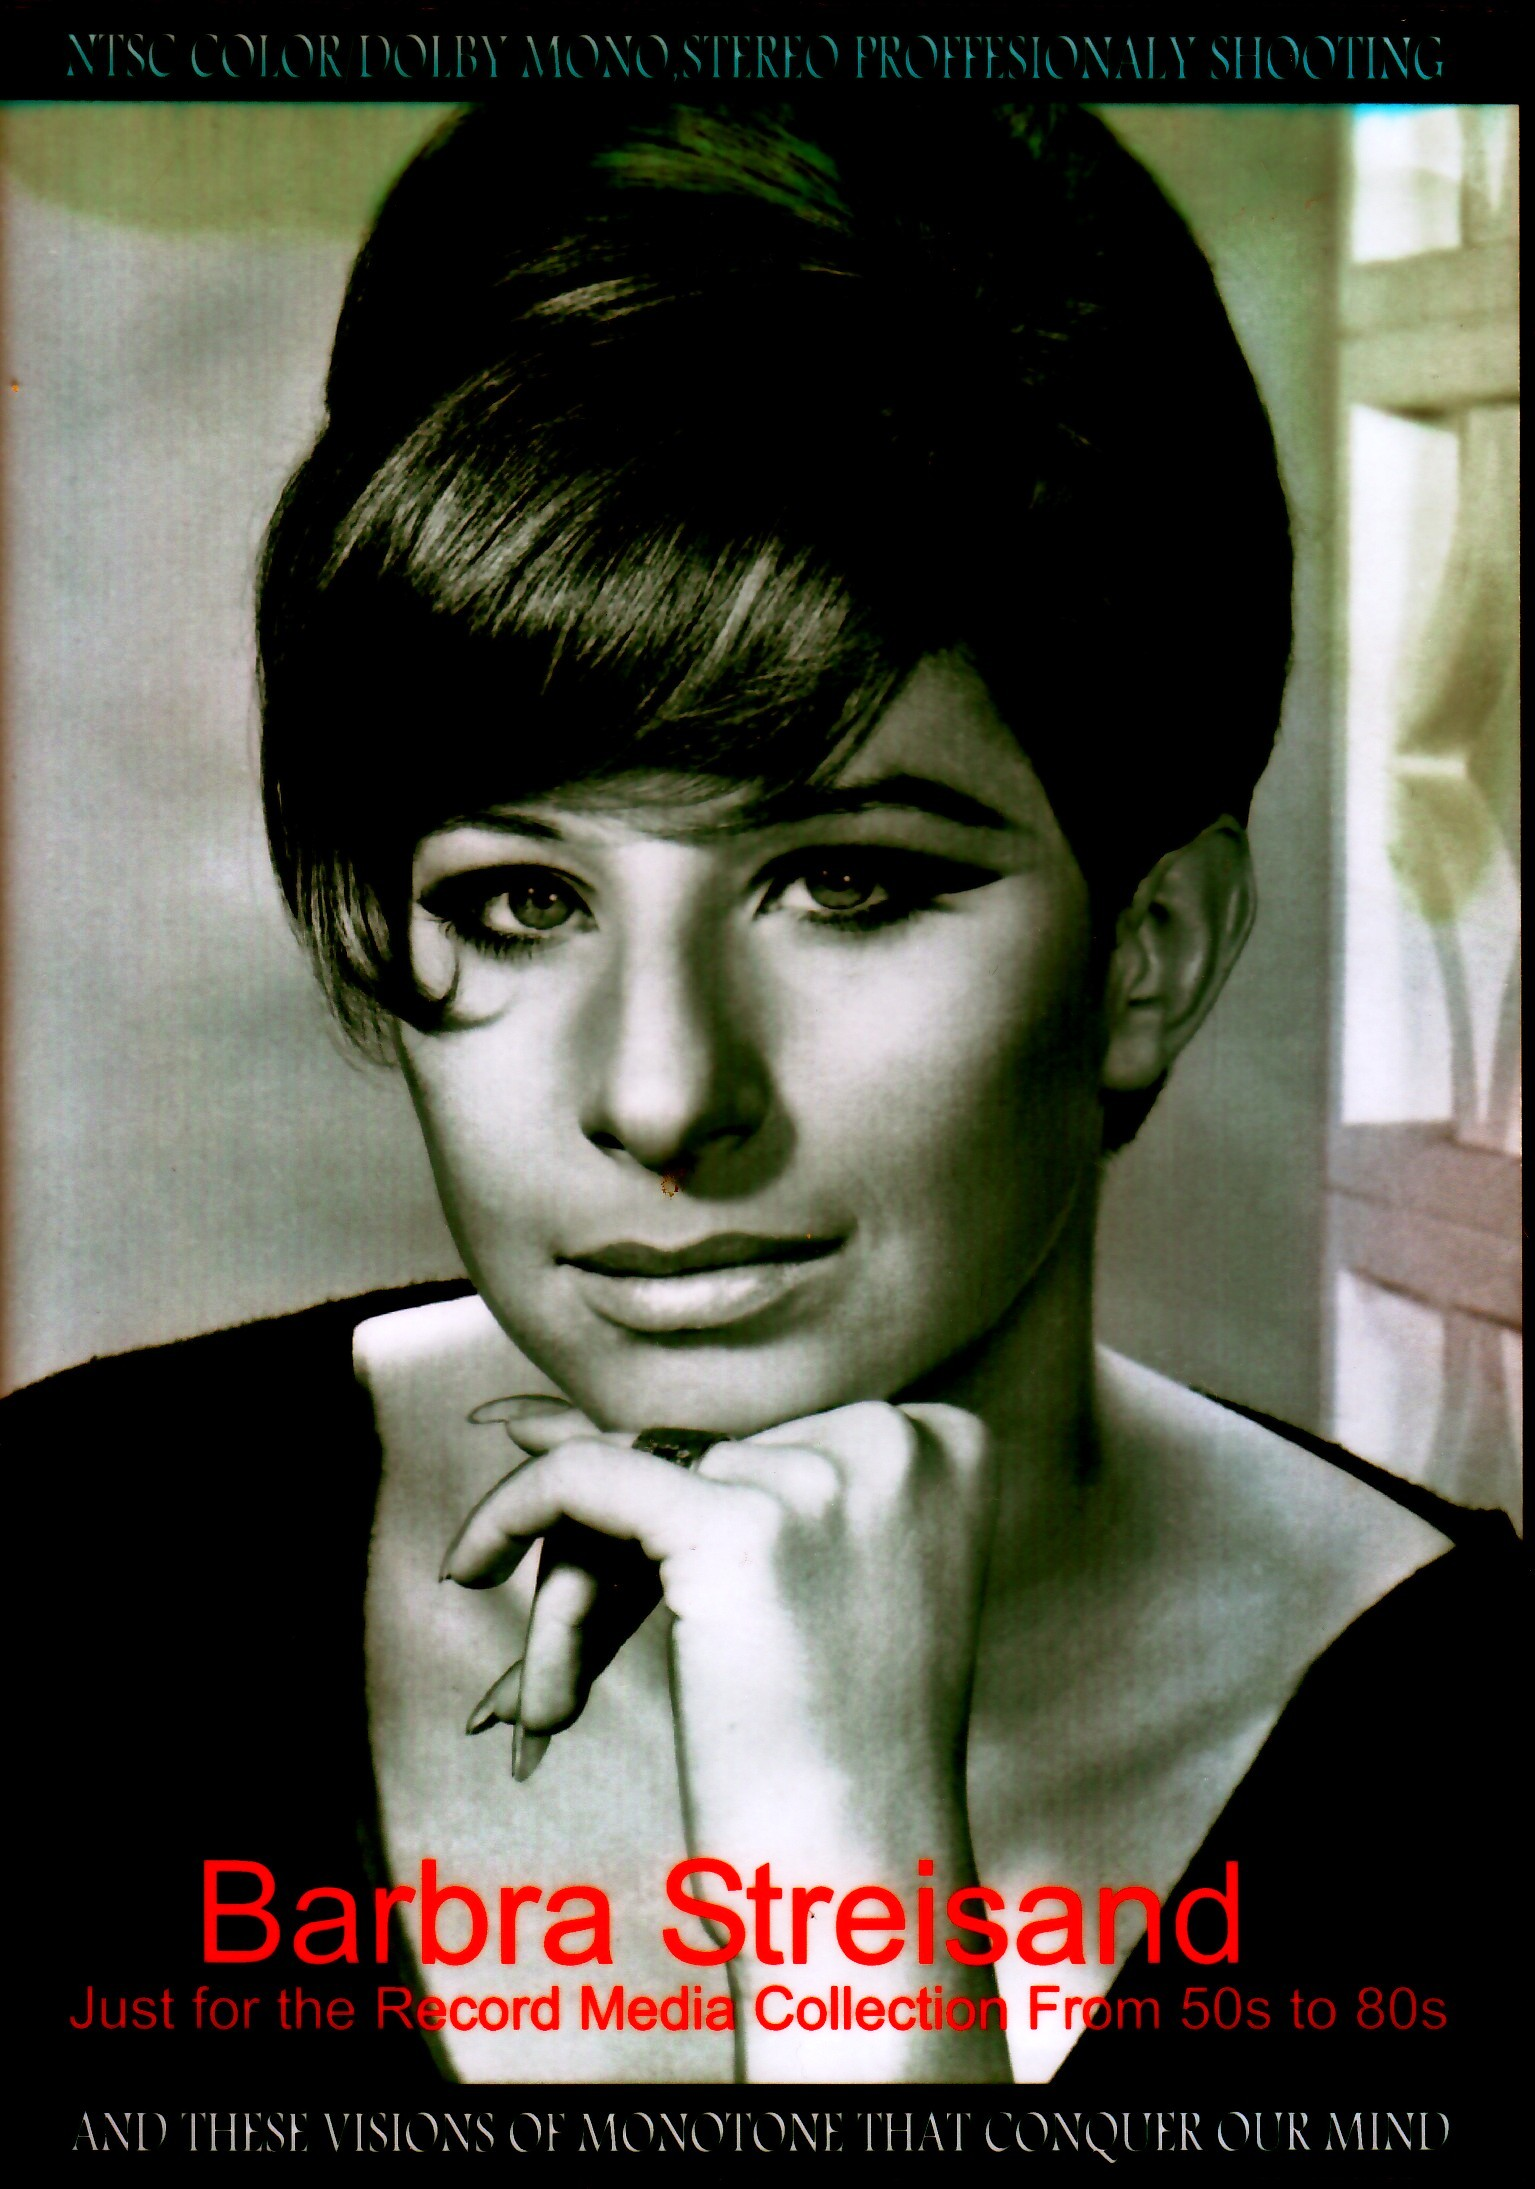 Barbra Streisand バーブラ・ストライサンド/Just for the Record Media Collection From 50s to 80s